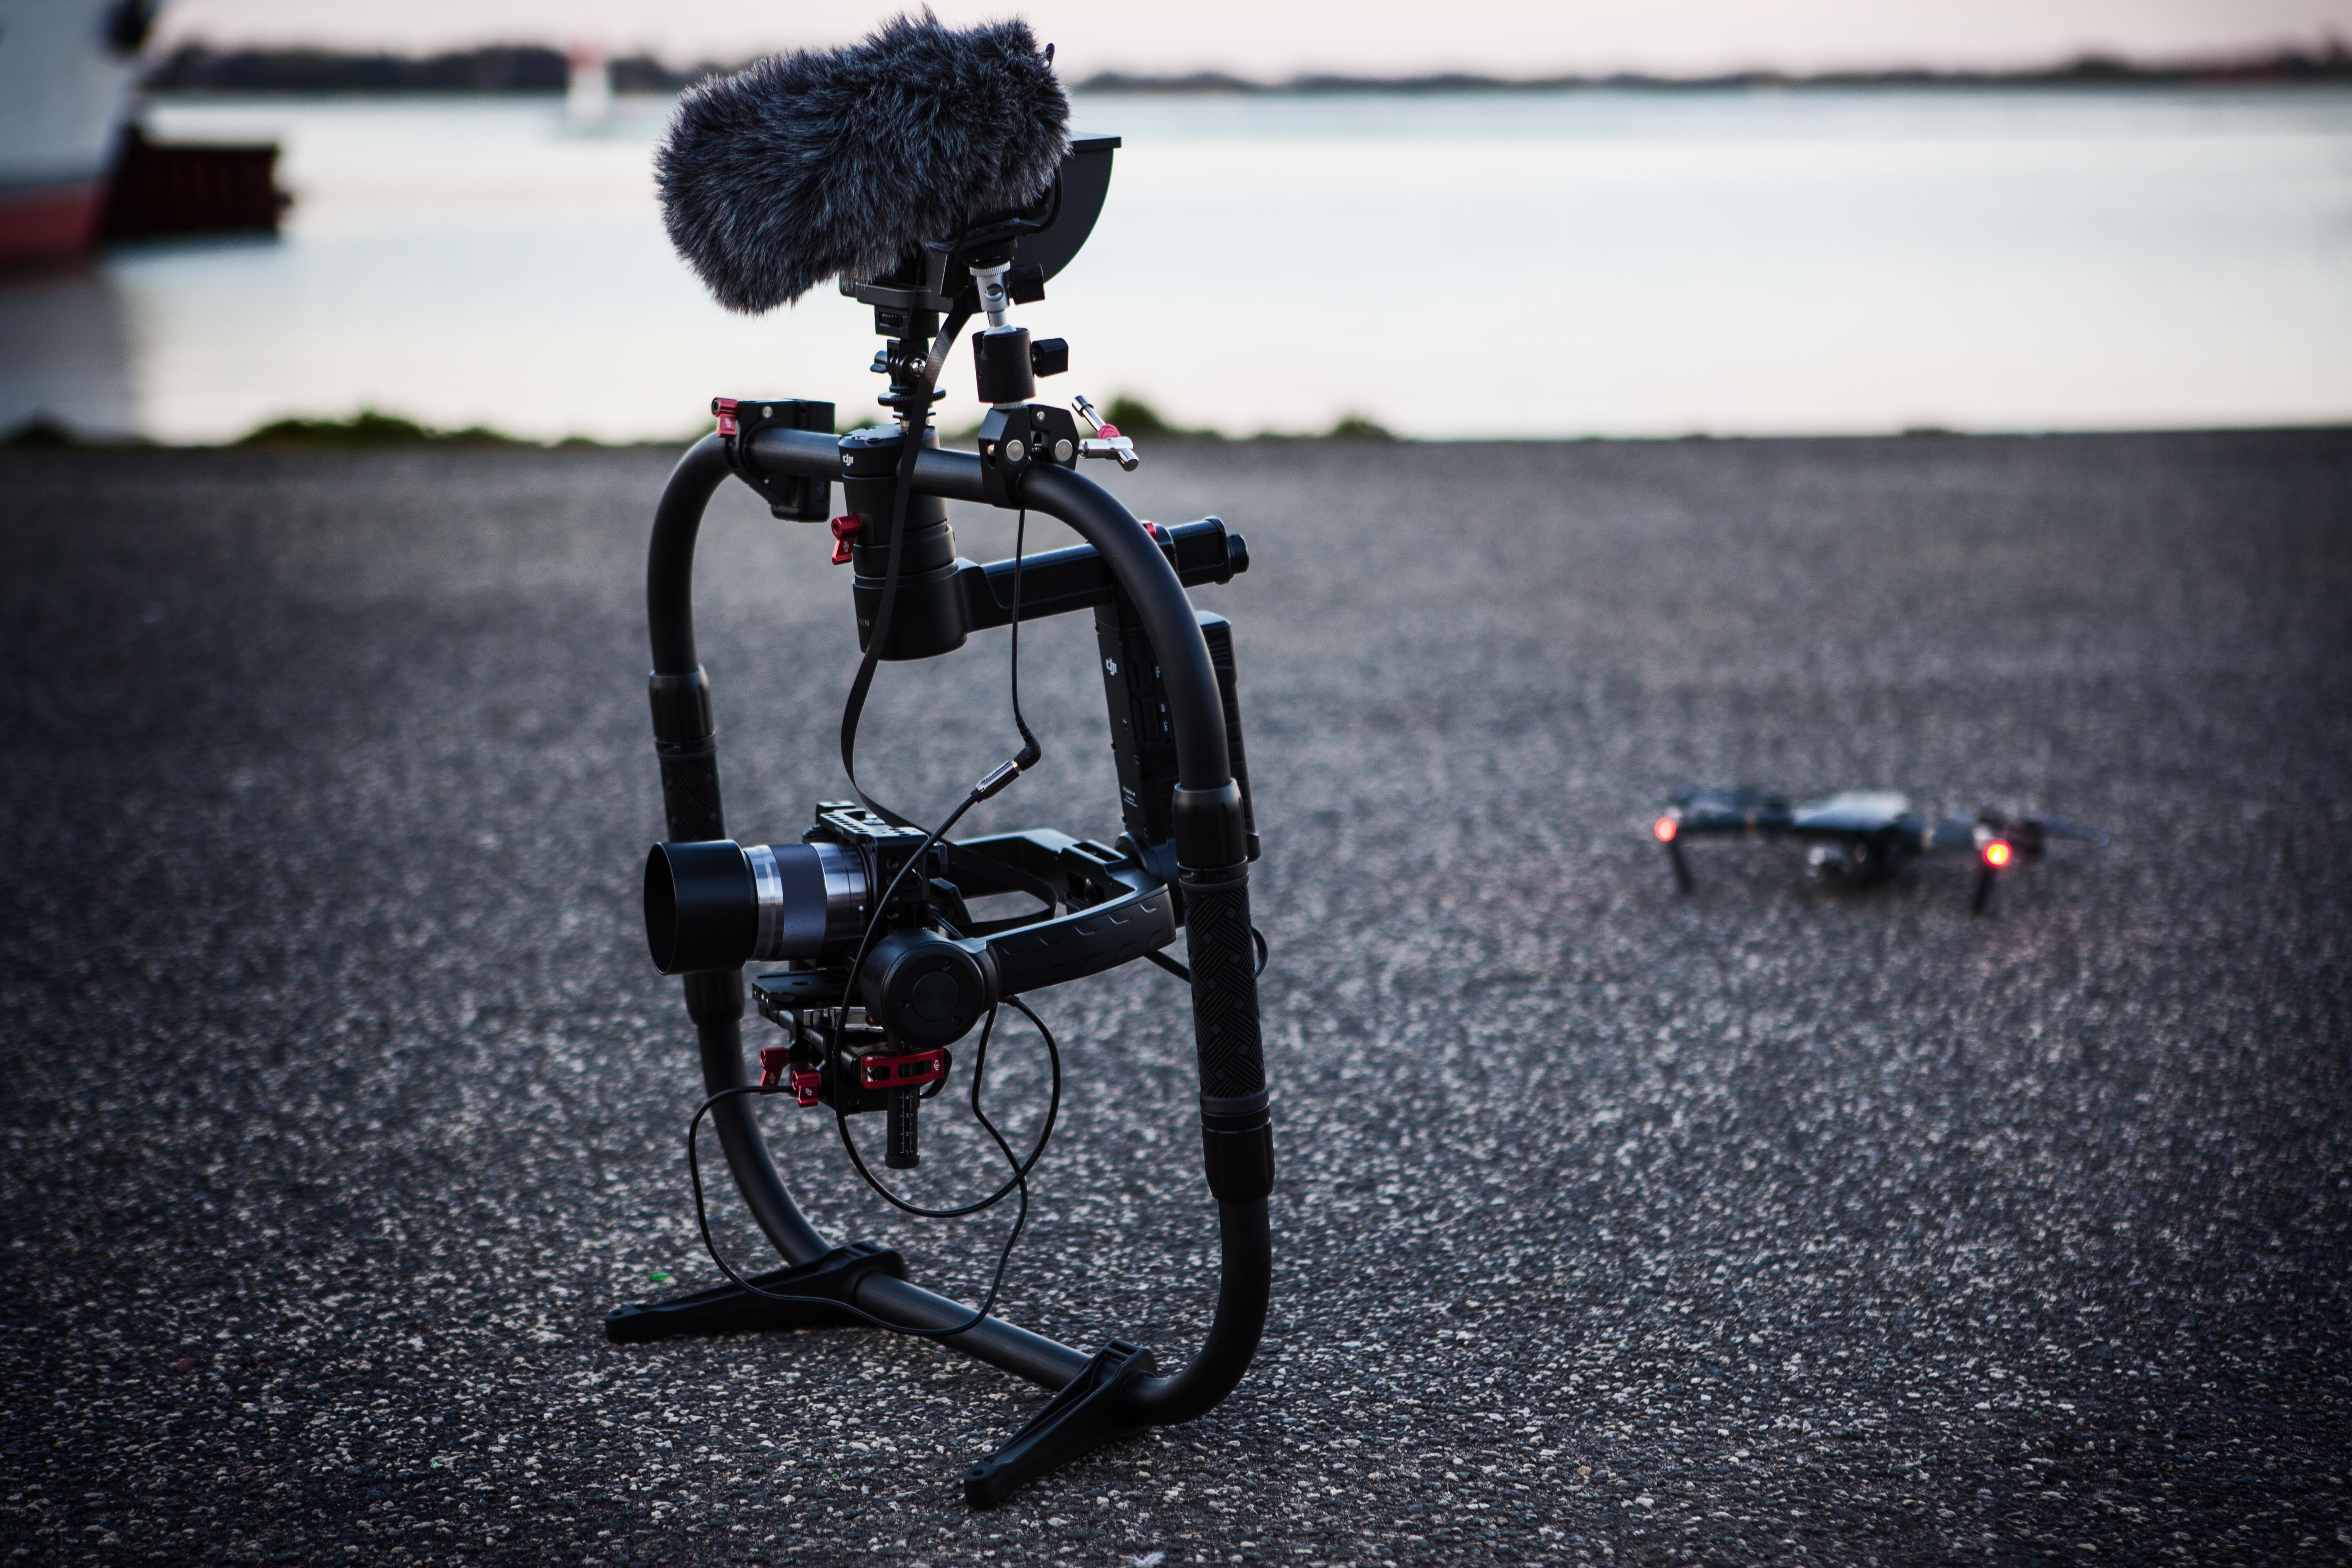 Shallow Focus Photography of Black Quadcopter Near Body of Water, Action, Pavement, Video, Vehicle, HQ Photo